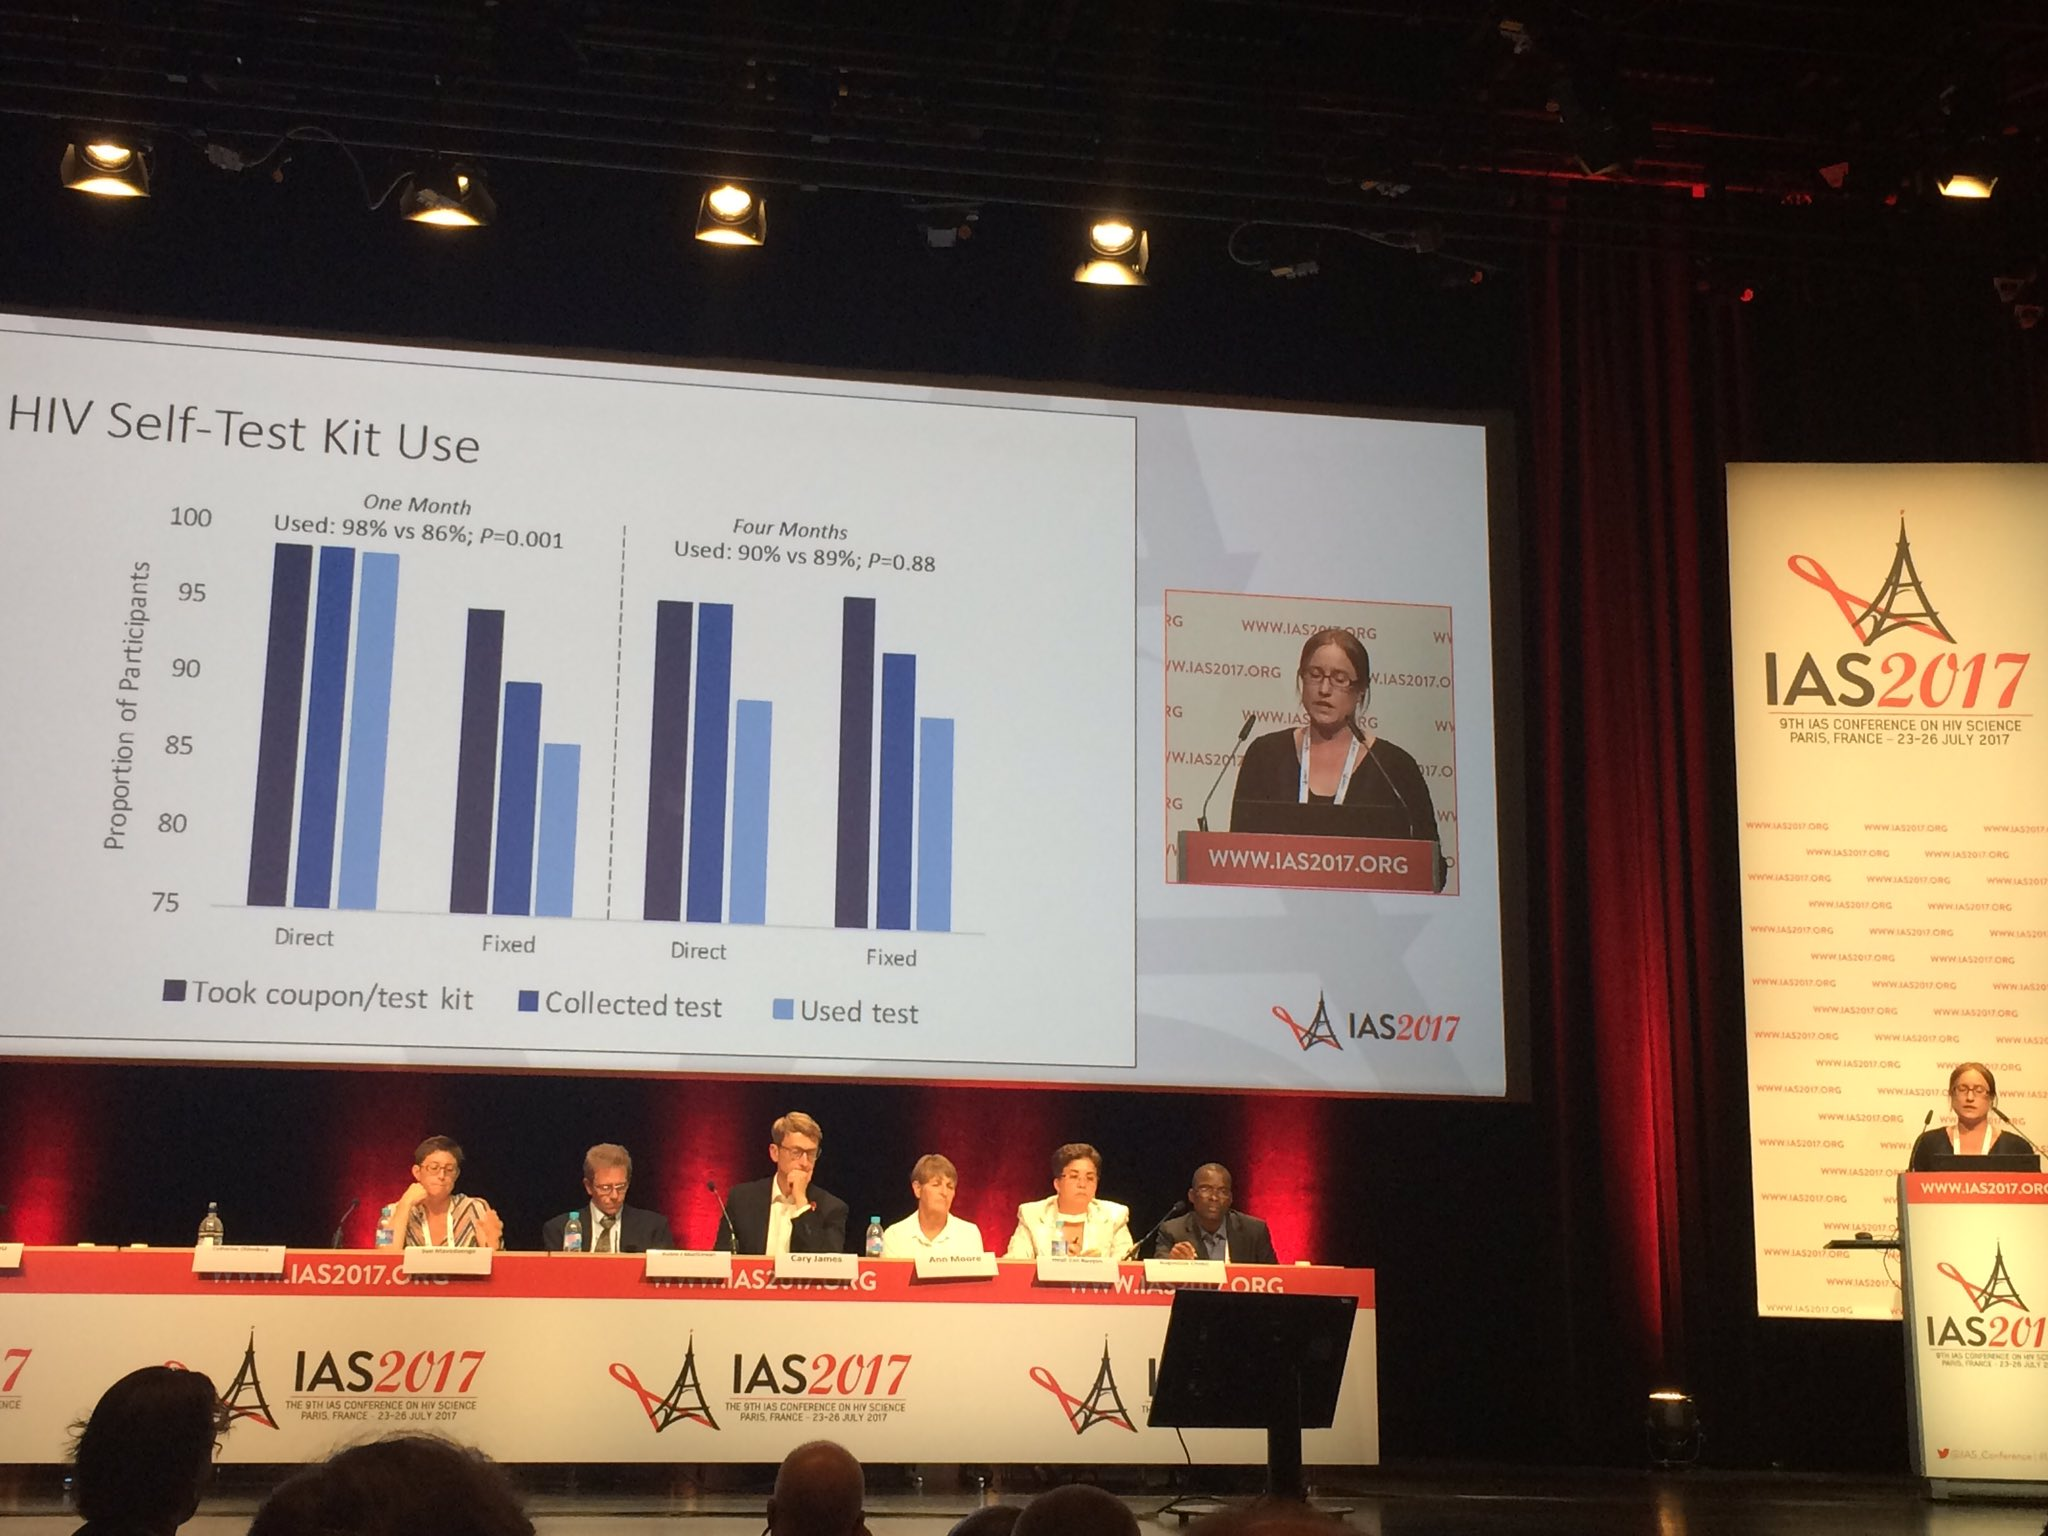 3ie grantee presents IE results at #IAS2017. #HIVST was highly used among participants in Zambia. #3ieatIAS2017 https://t.co/RFFjlW0VdO